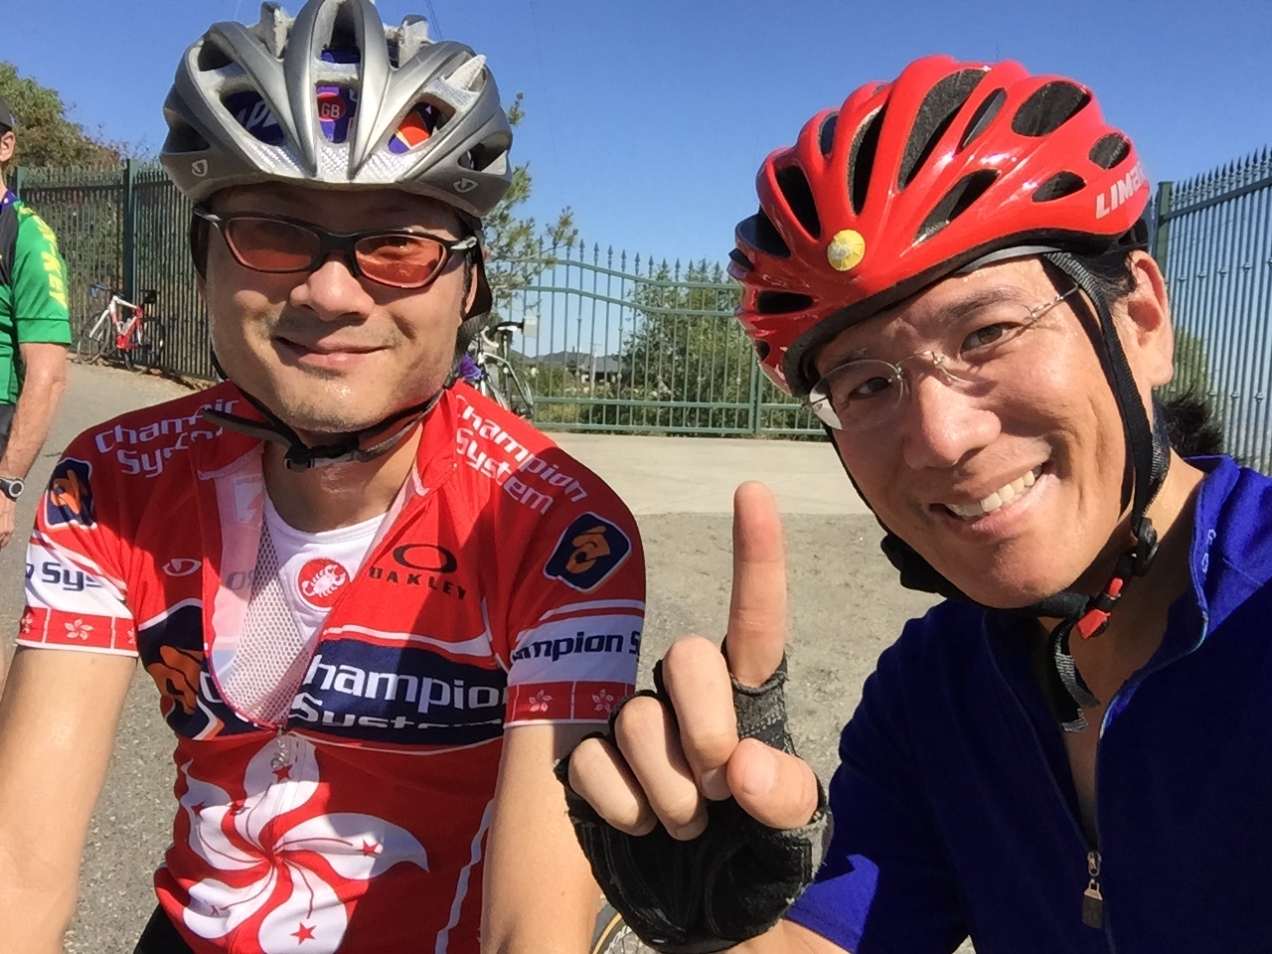 Stephen and Adam share a smile following our ascent of Montebello Road.